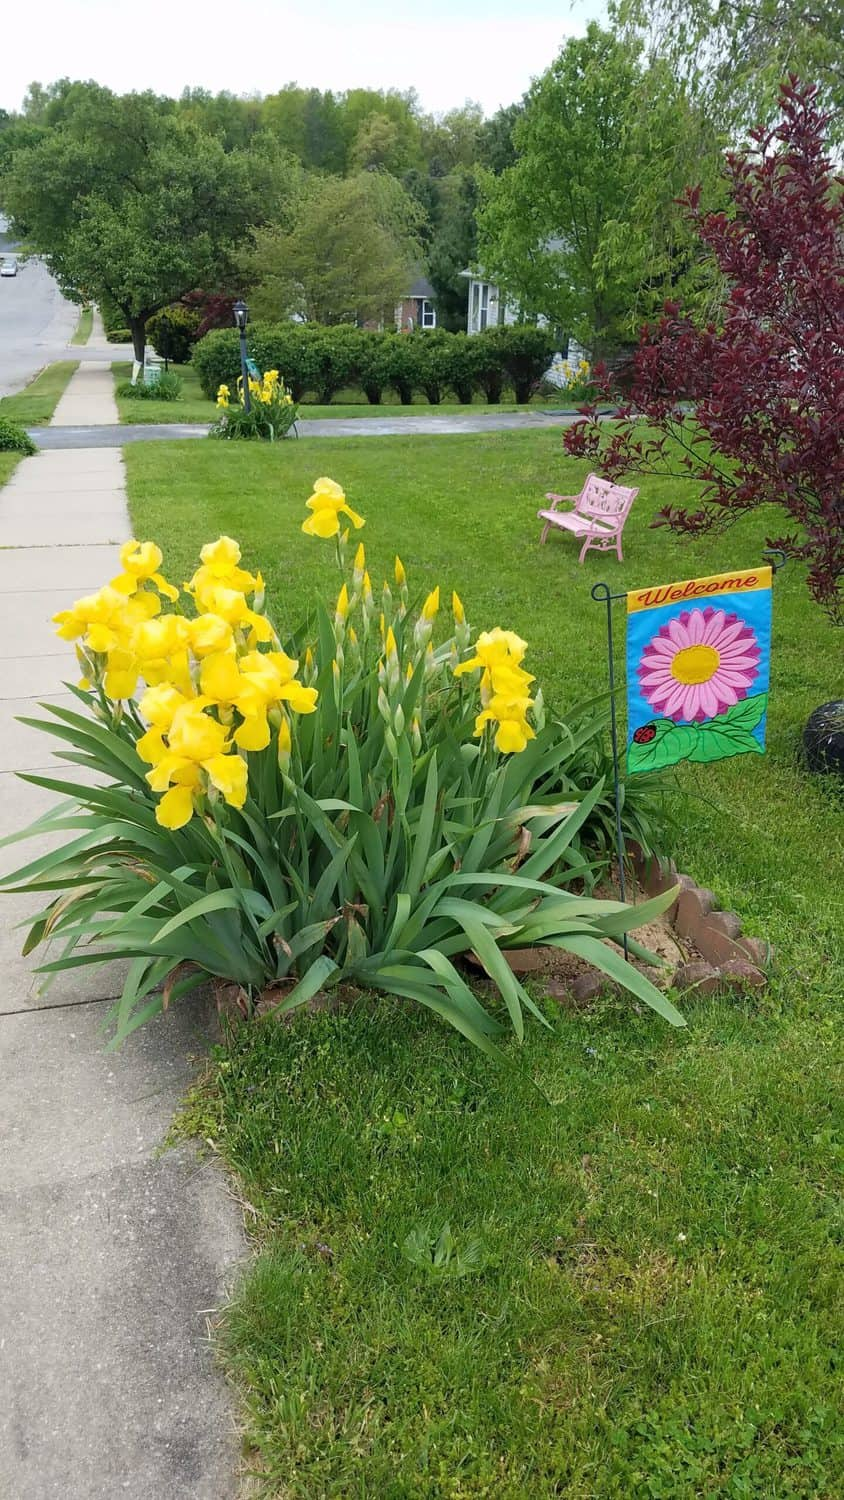 yellow irises along a sidewalk with a miniature garden flag, and a pink bench in the background